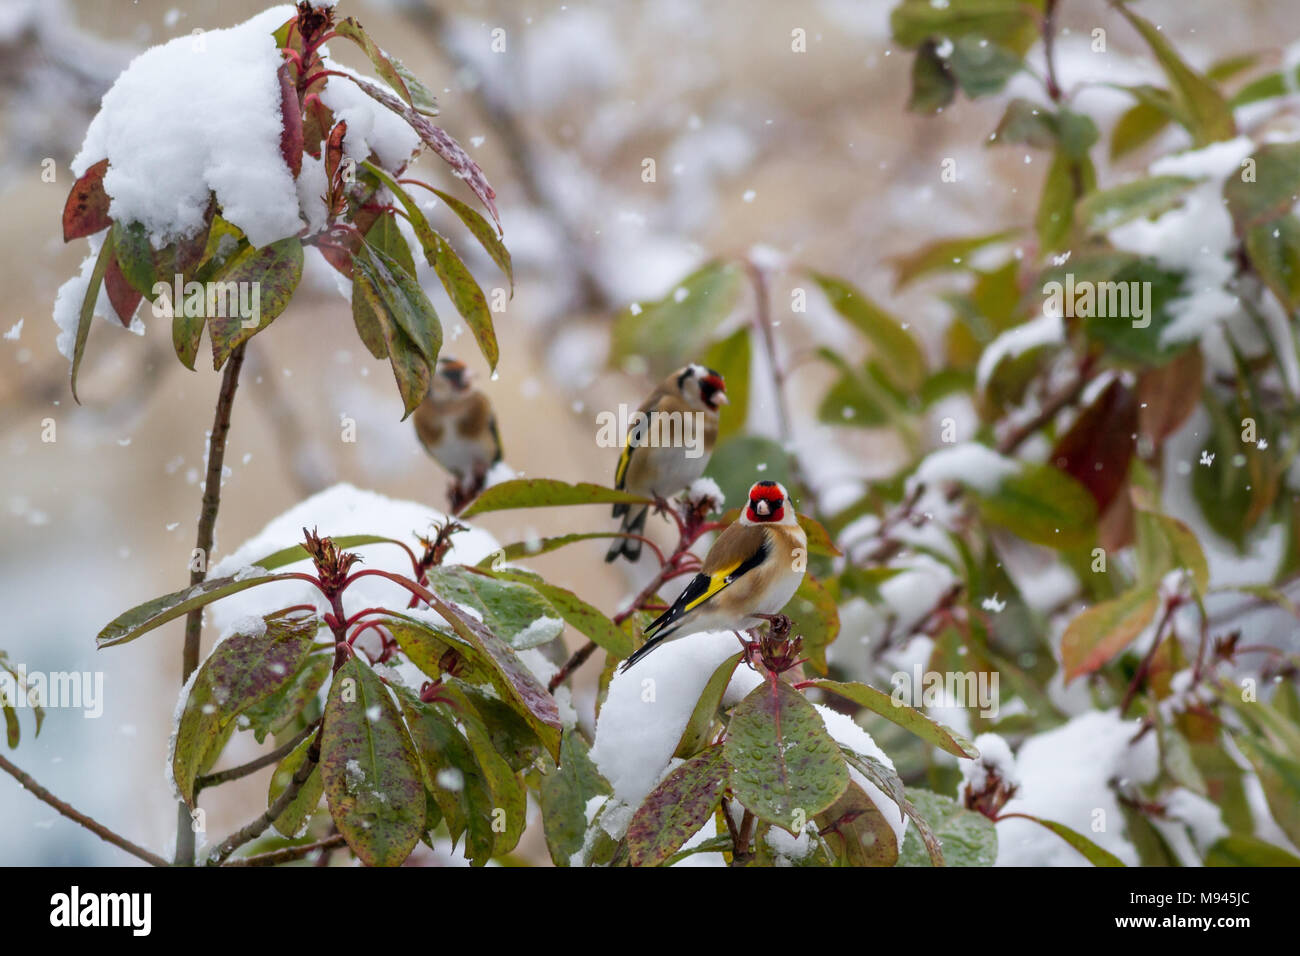 Group of goldfinches in a snowy garden while it's snowing, UK wildlife - Stock Image